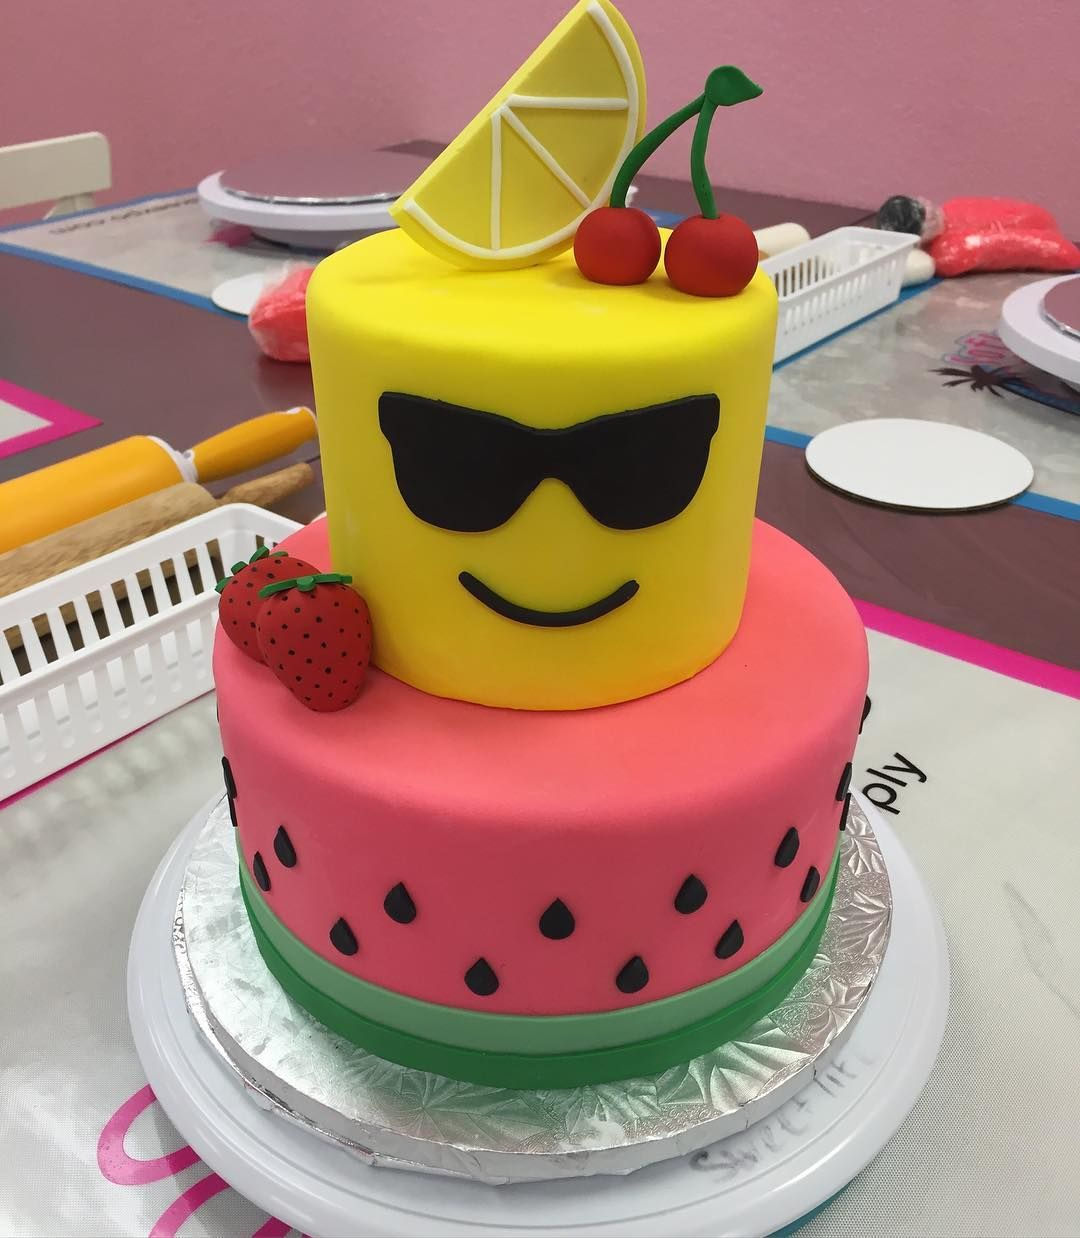 Day 3 Tween Camp Fondant Day Excited To Teach All